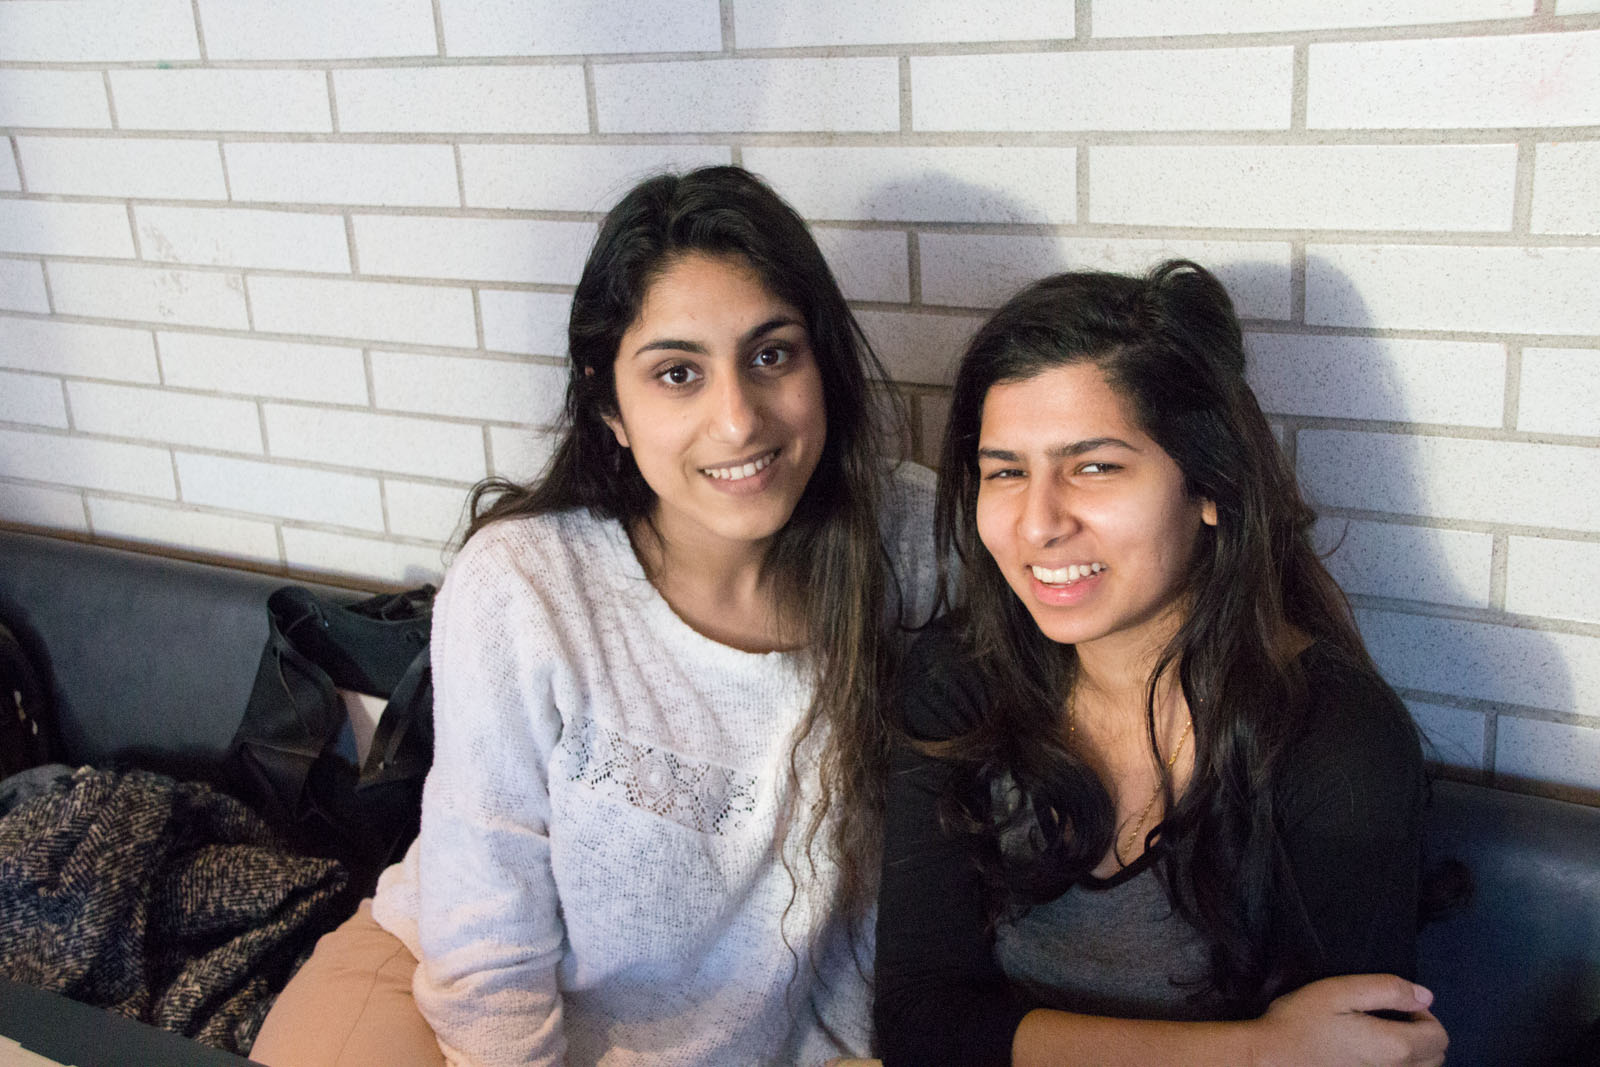 Harminder Atwal (left) and Priya Thind (right).